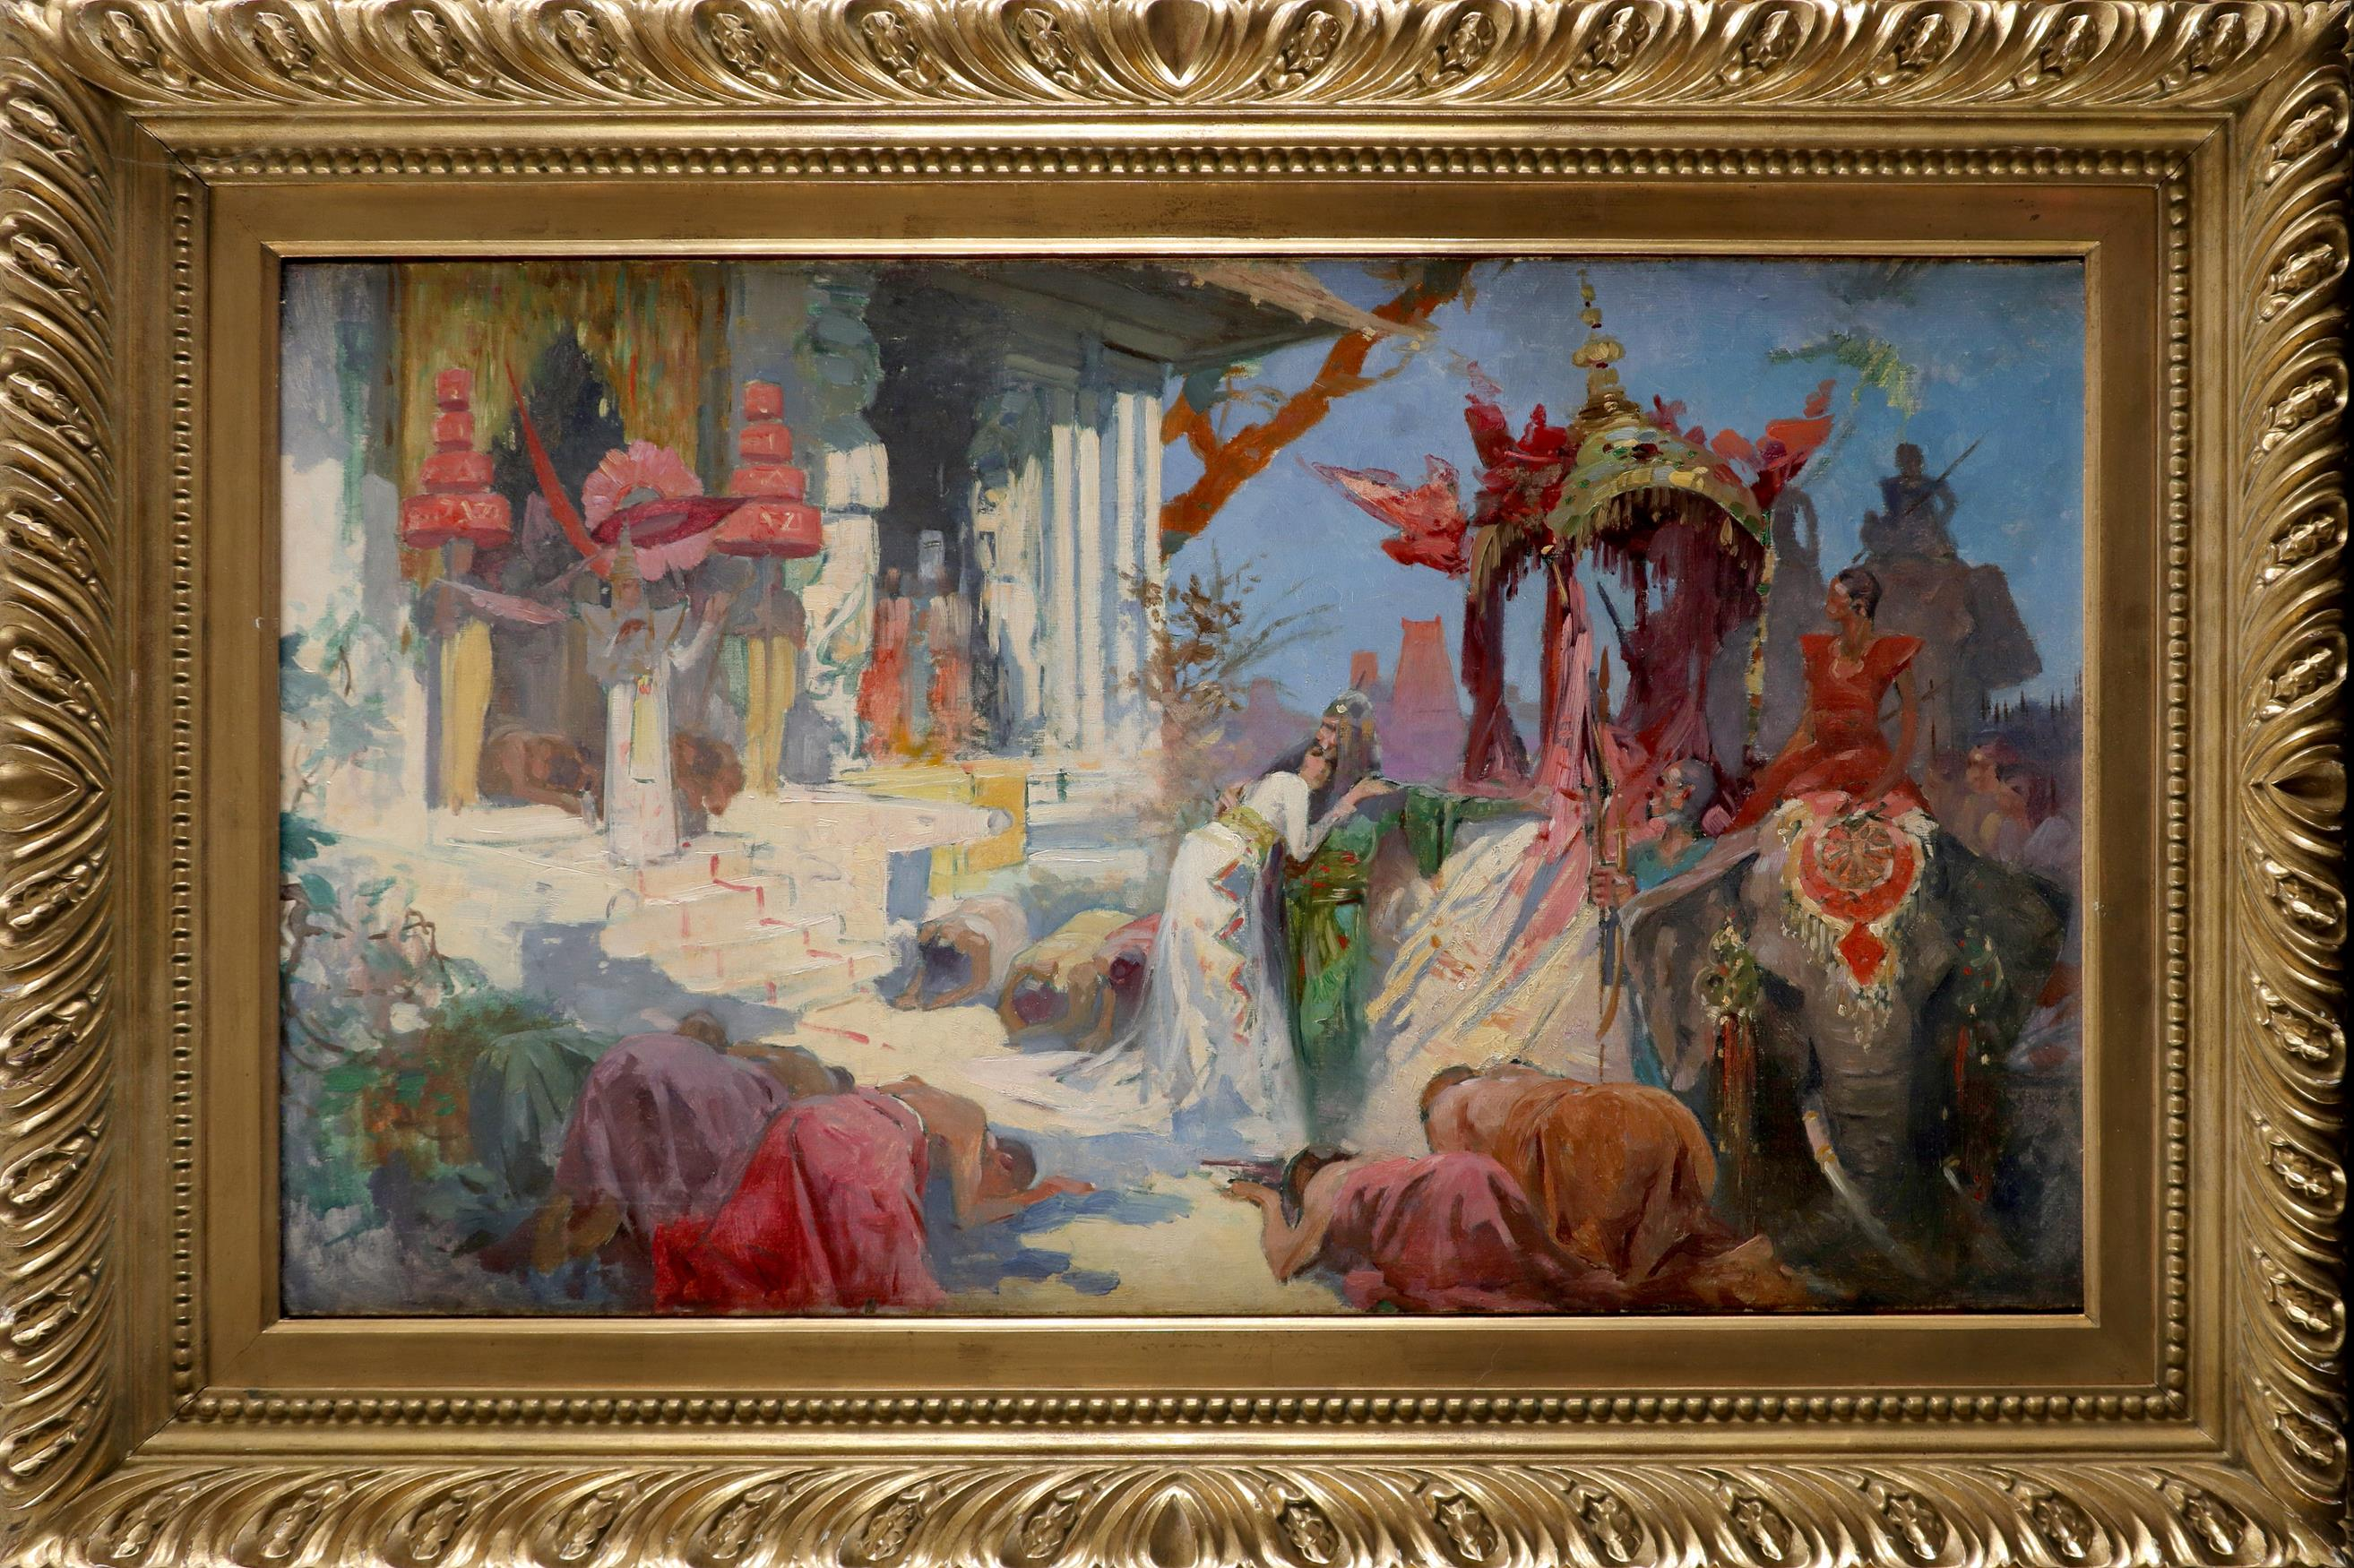 Continental School Early 20th Century An Indian ceremonial scene Oil on canvas 50 x 81.5cm - Image 2 of 3